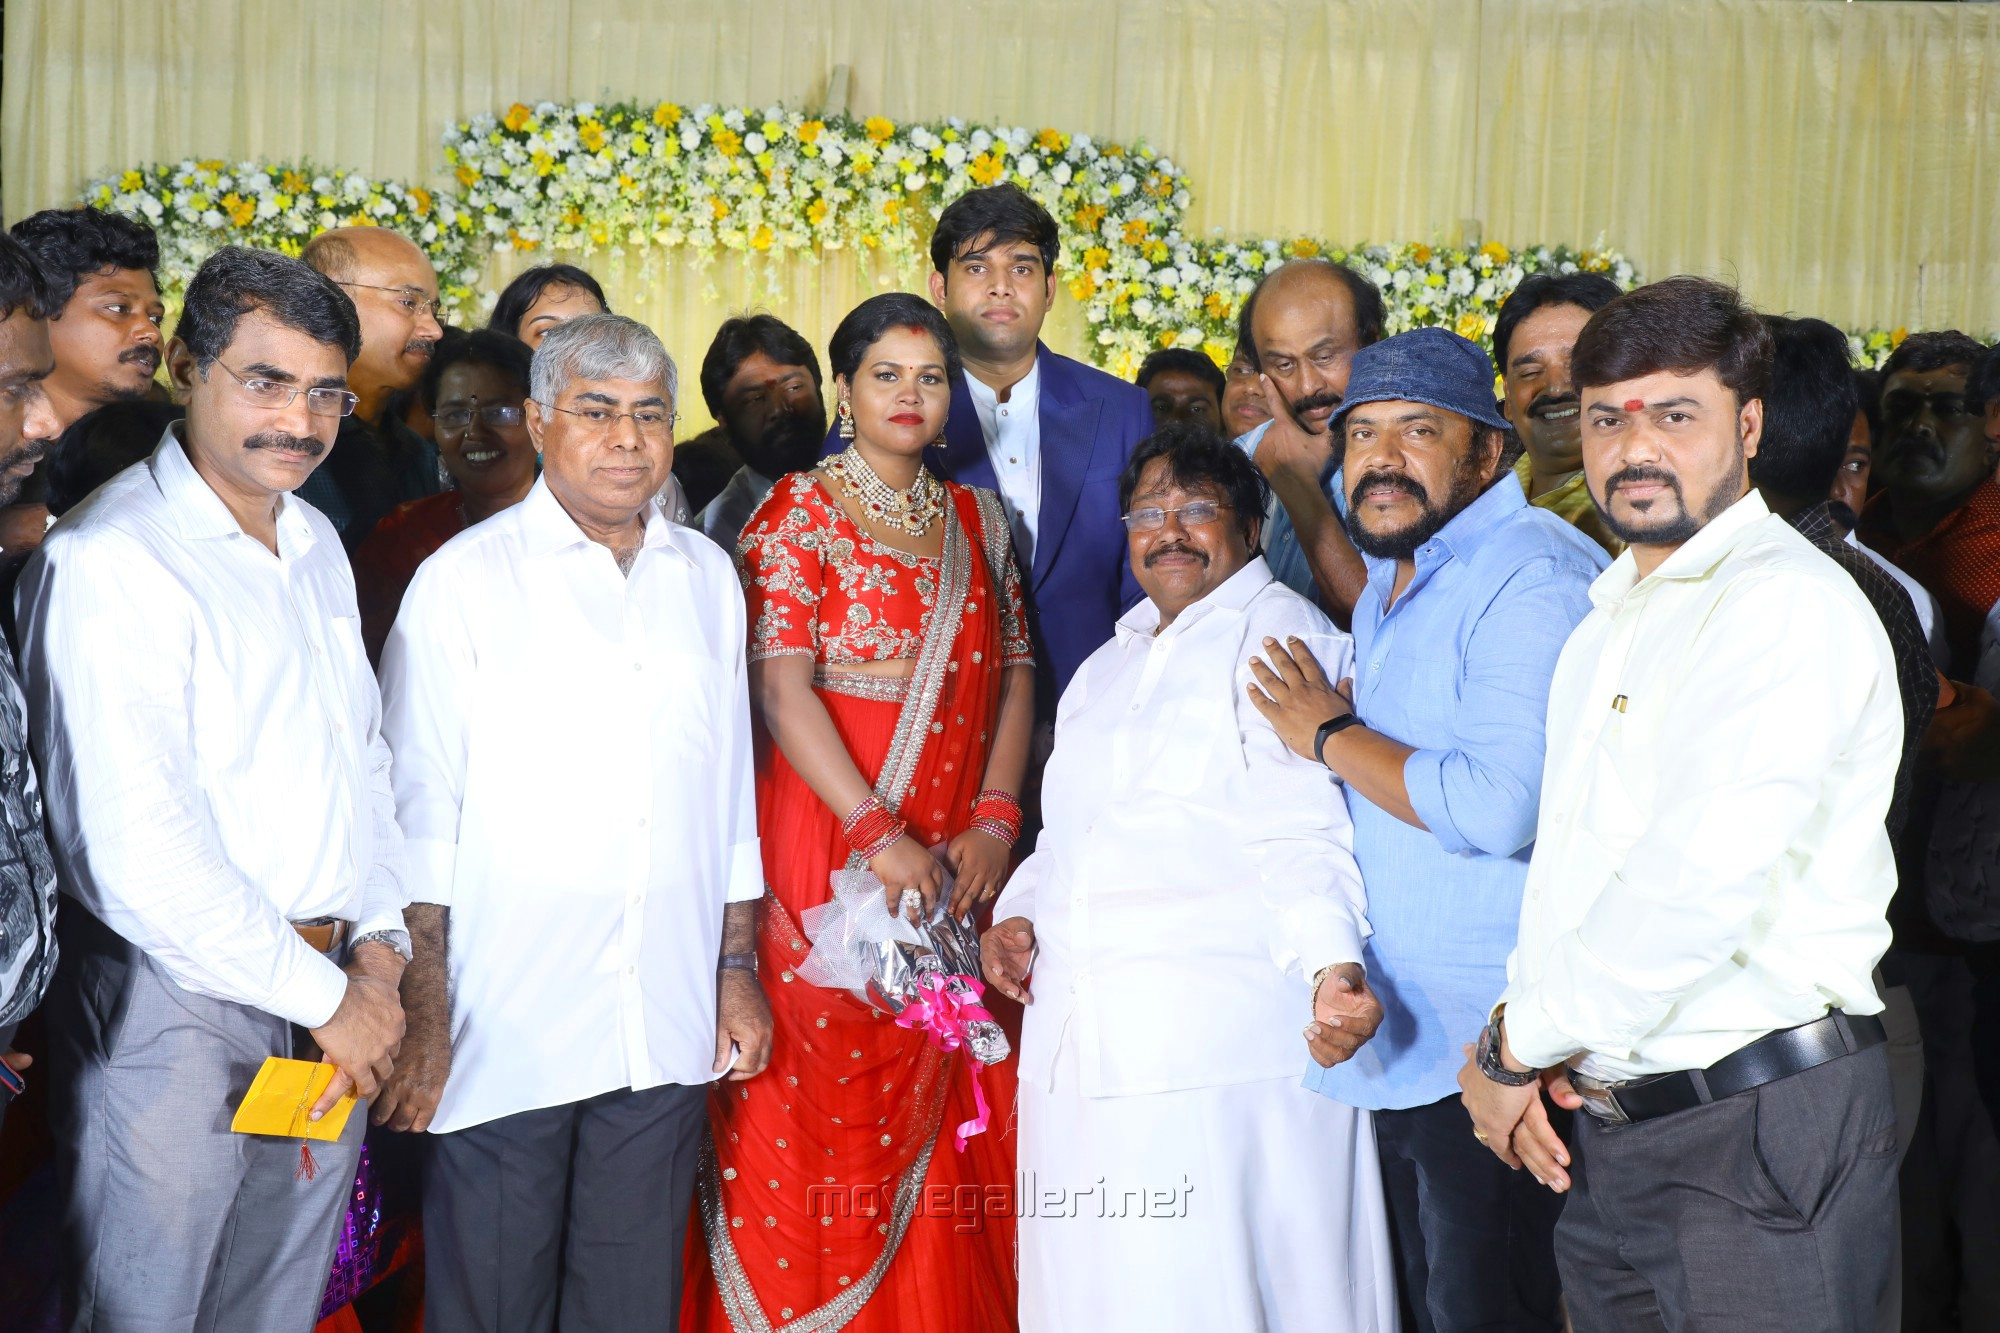 Joe Malloori @ Salem RR Briyani Tamilselvan daughter Wedding Reception Stills